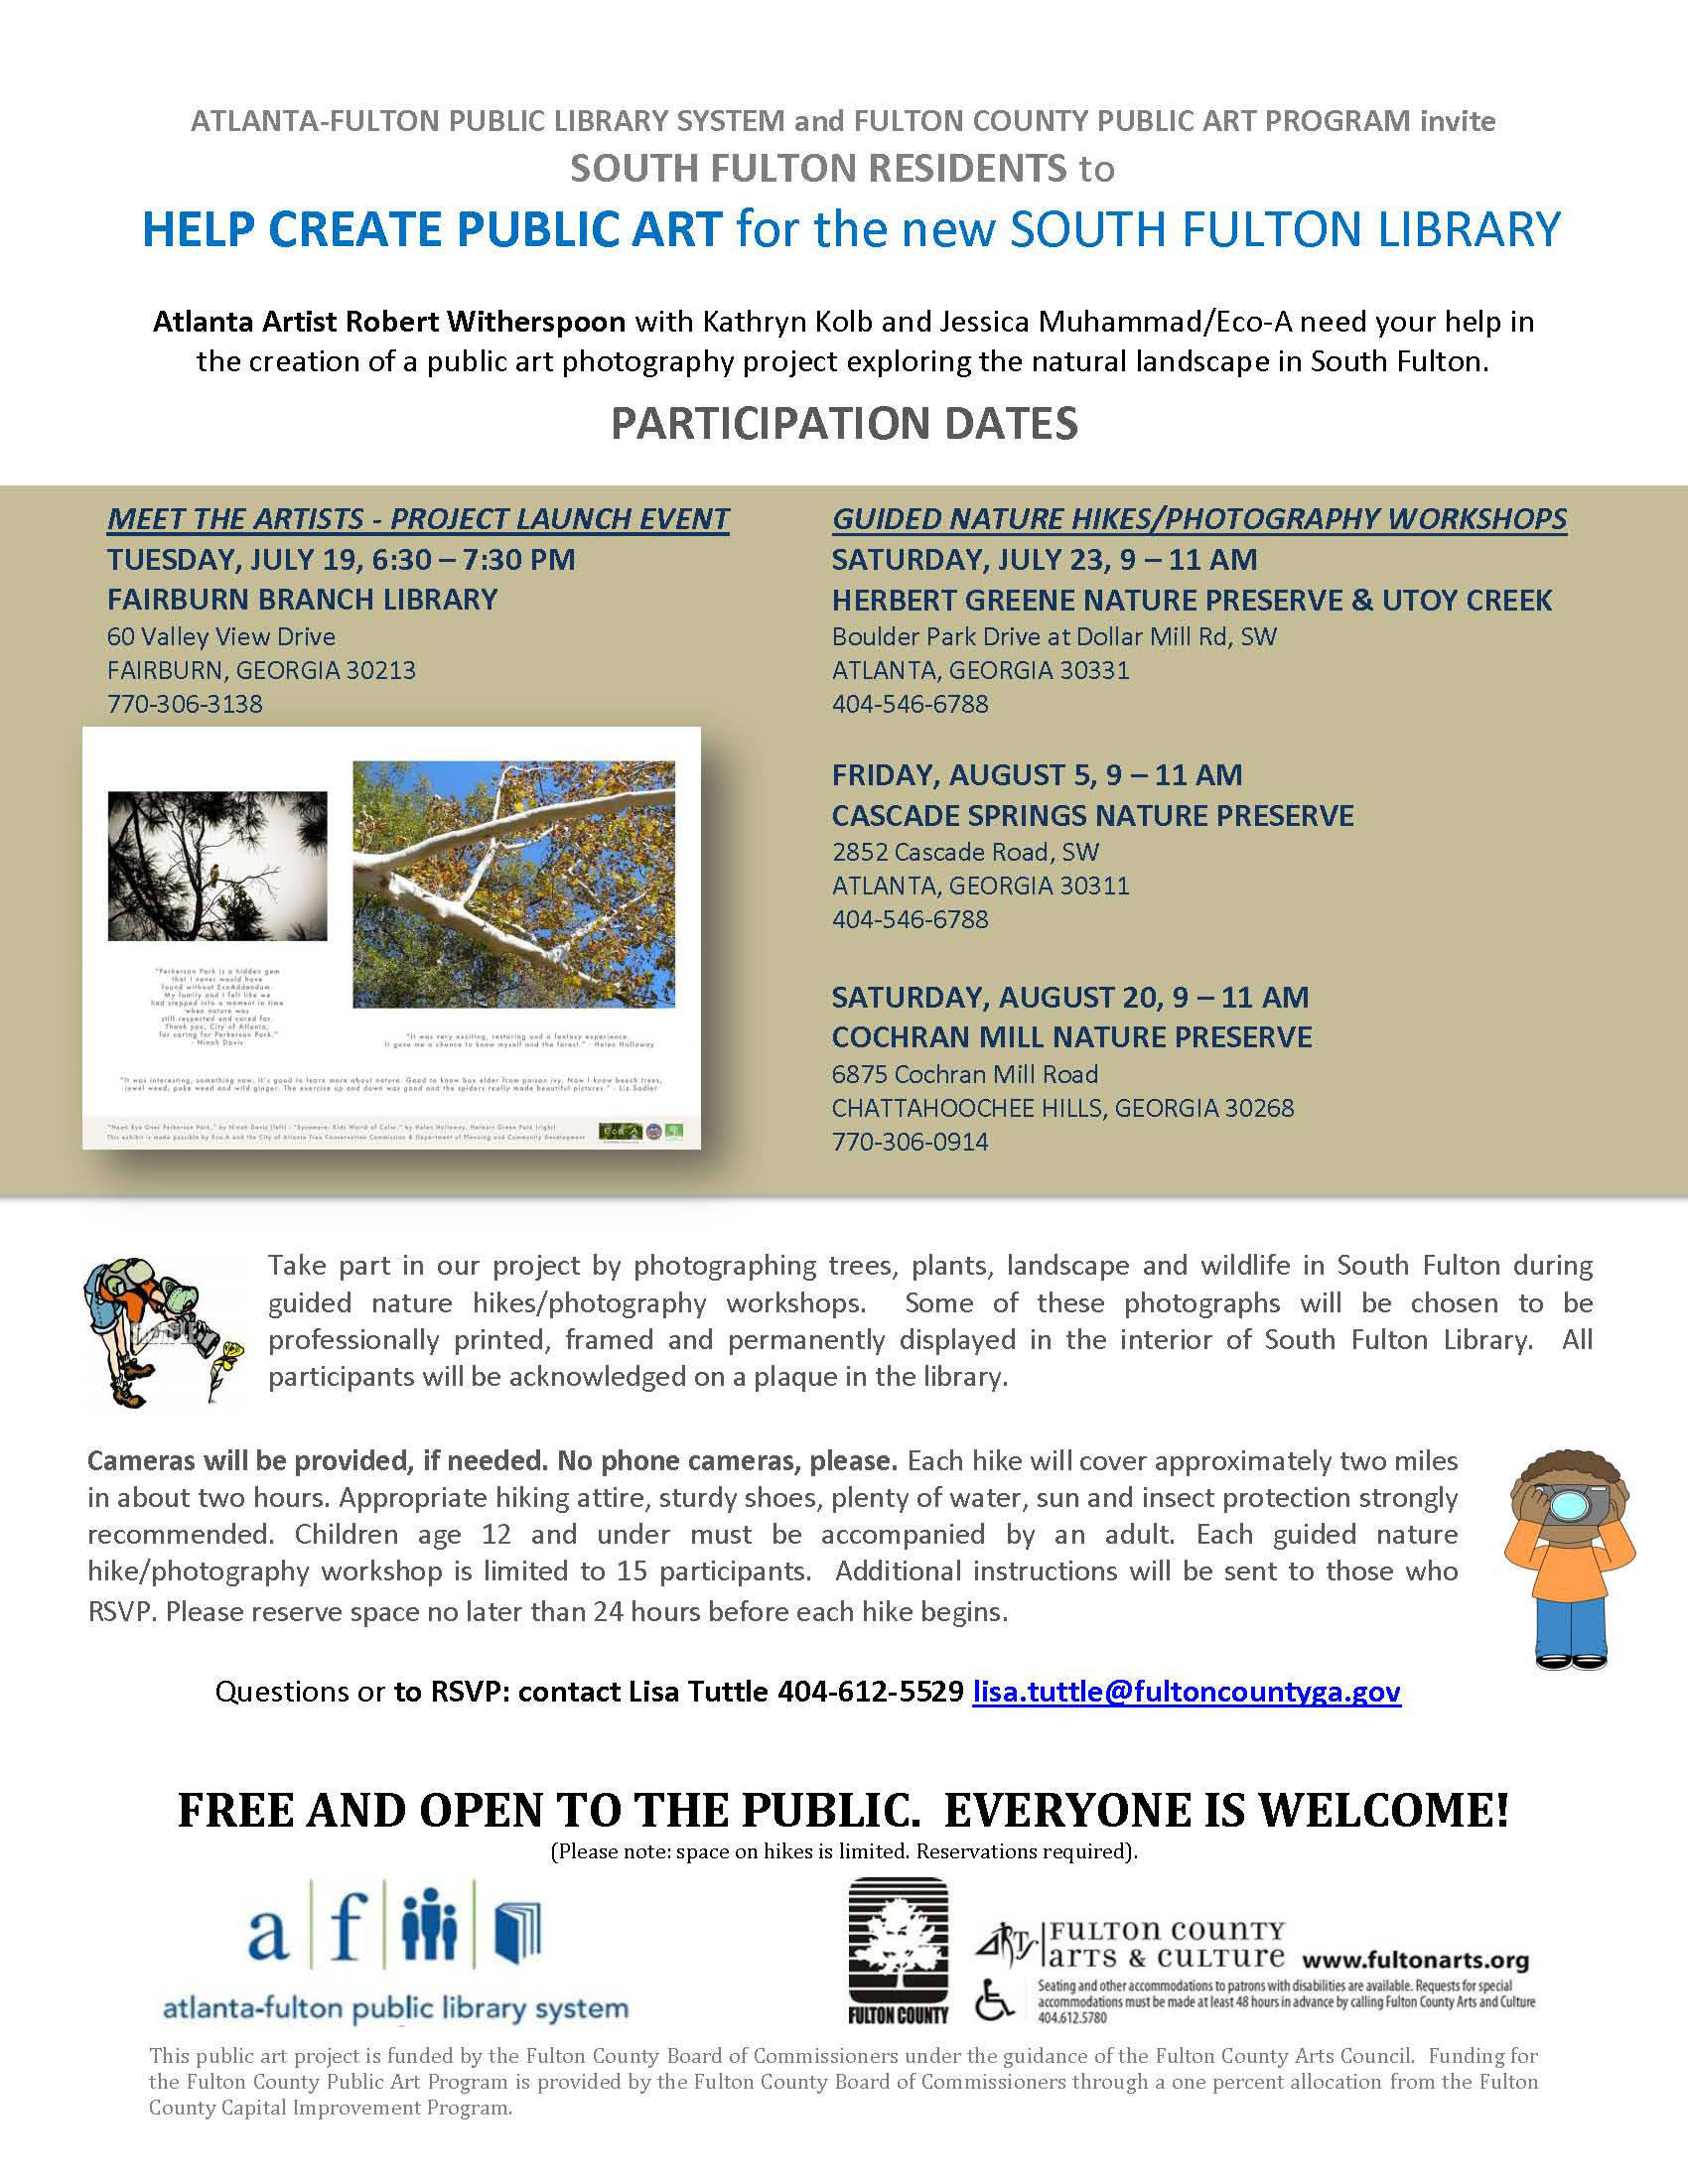 A text flyer wuth information about helping to create a public art piece for the new south fulton library.